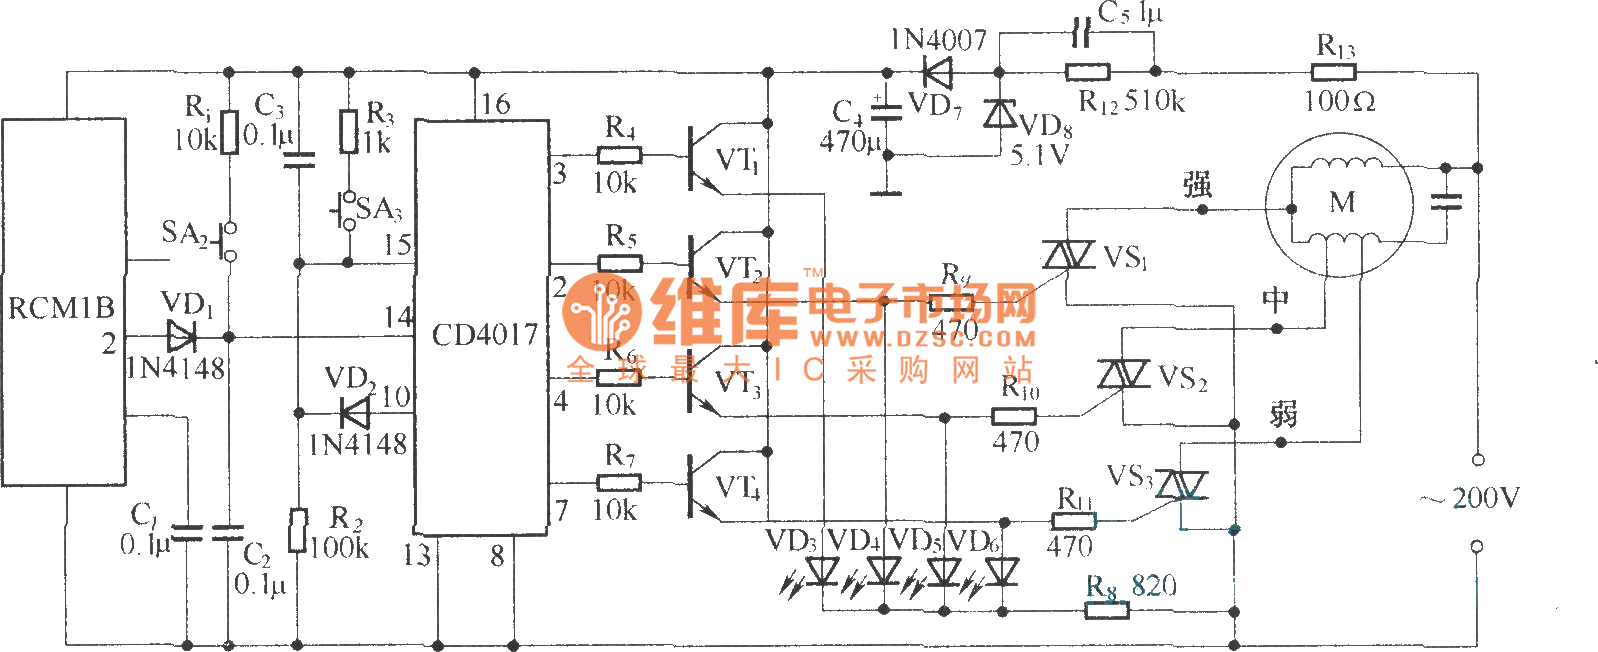 Circuit Diagram Remote Control Ceiling Fan Free Wiring For Model And Schematics Electronics Circuits Wireless Speed Controller Rcm1a Rh Seekic Com Gama Board